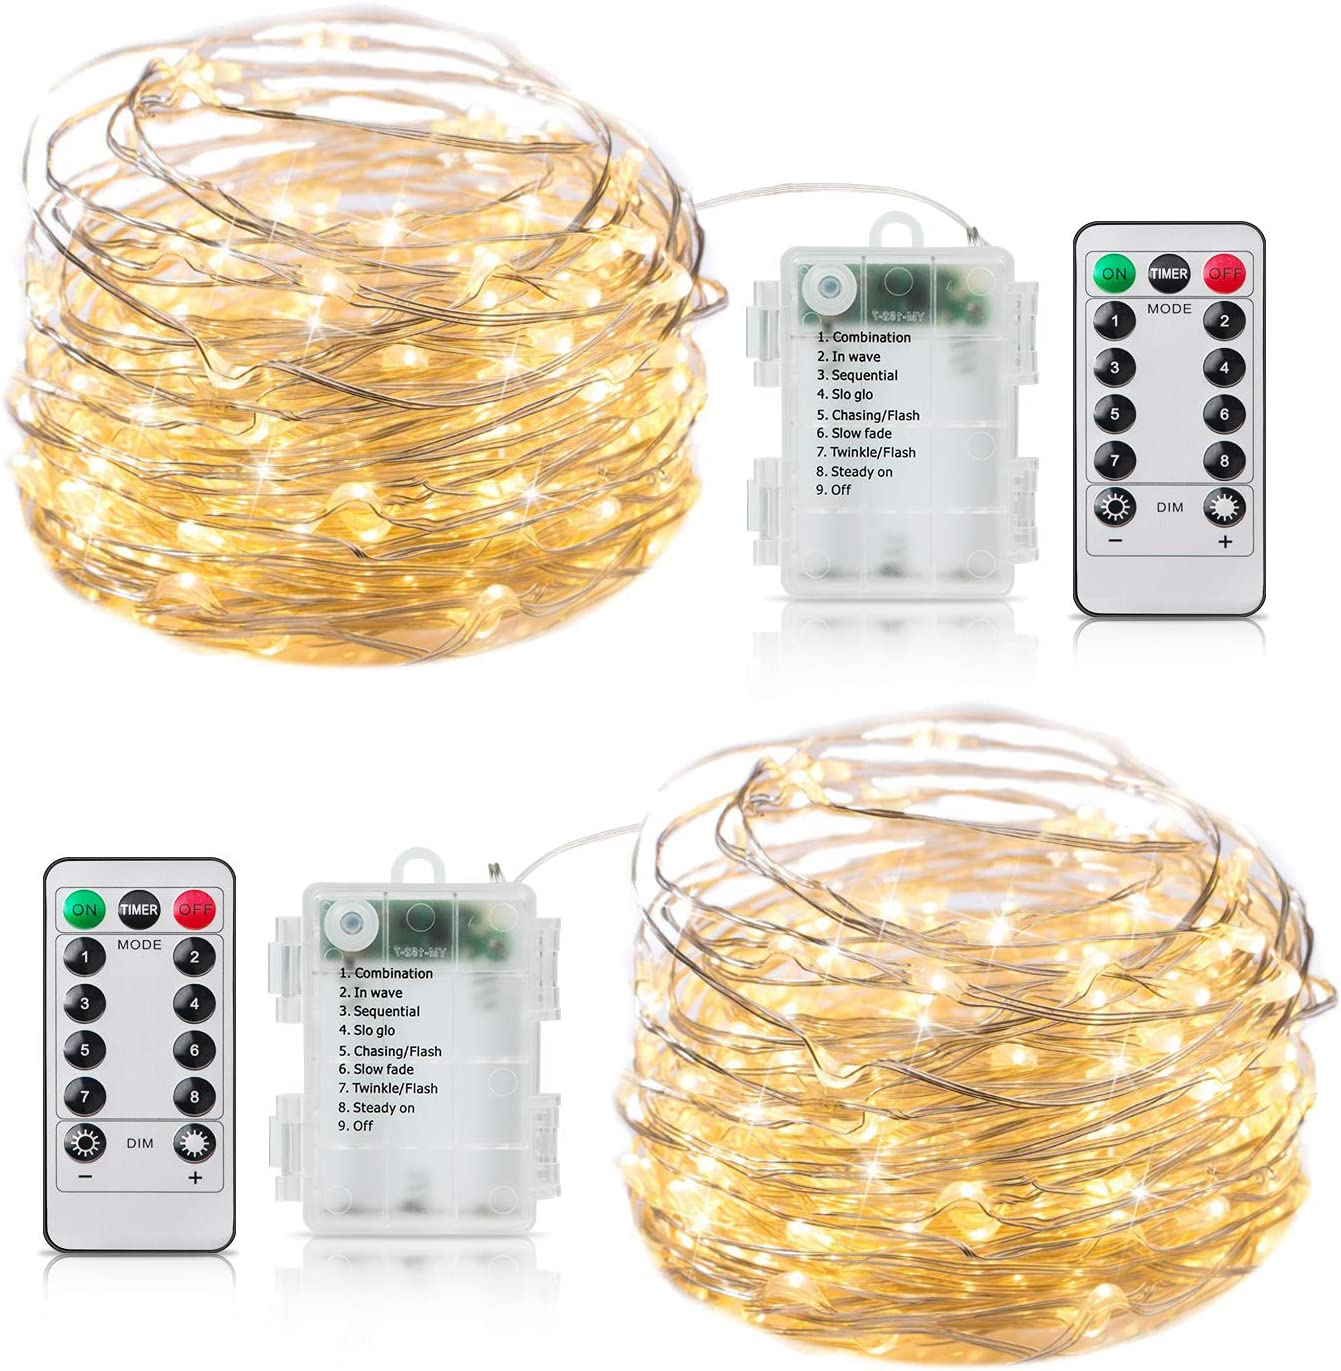 2 Pack 33ft Fairy Lights Battery Operated with Time Function and 8 Mode Remote, 100 LED Waterproof Starry String Lights for Bedroom Indoor Outdoor Wedding Dorm Decor, Warm White